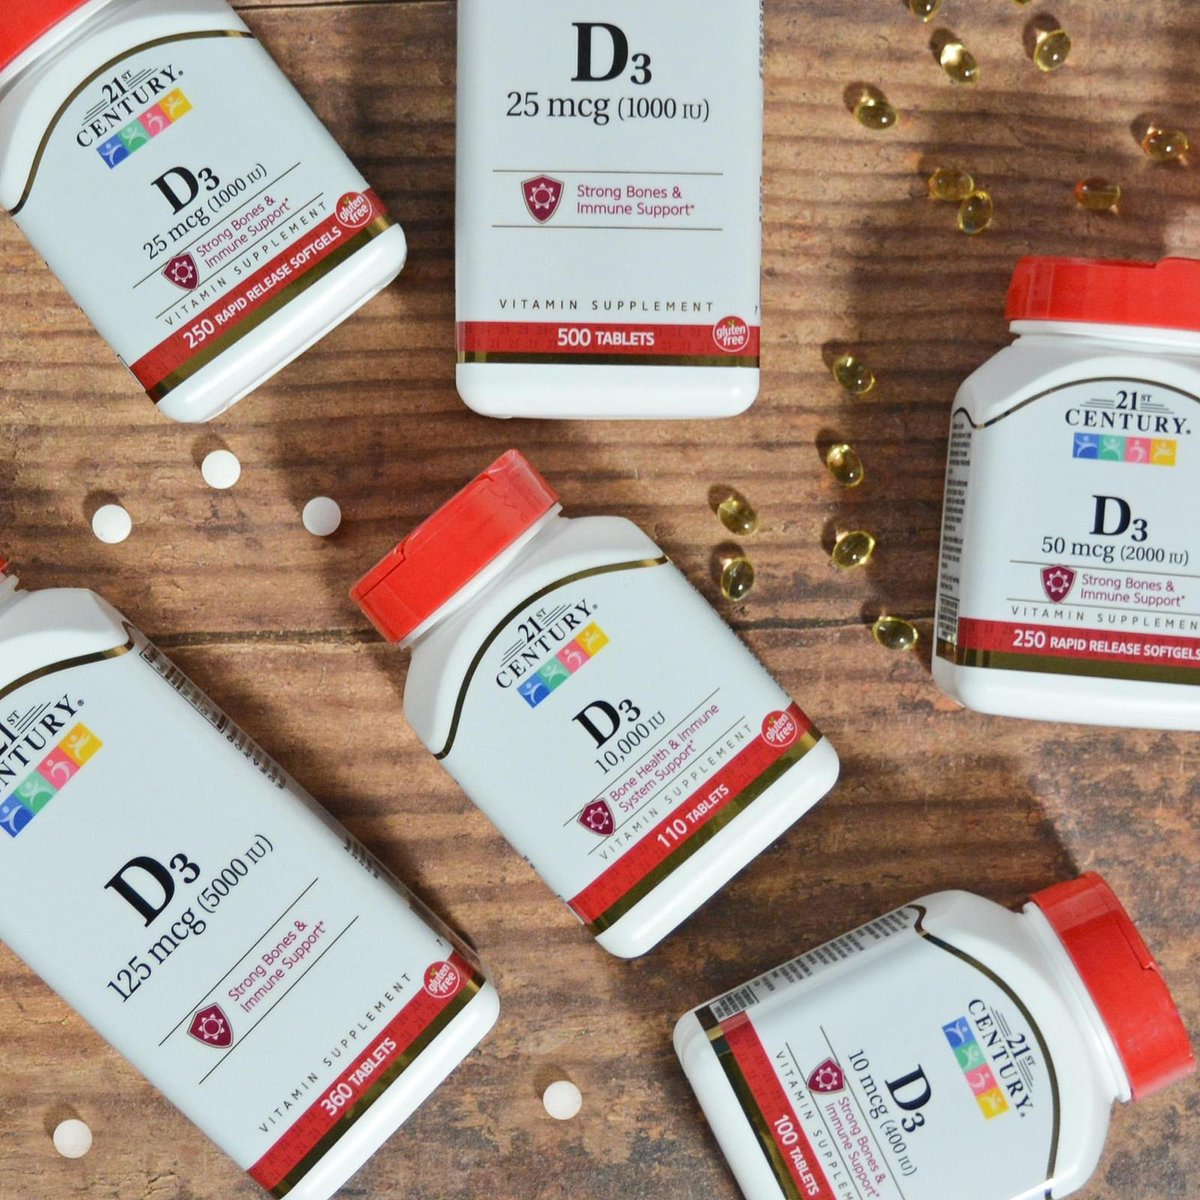 Can't get out of the house because of the lockdown? Take our very own Vitamin D3 daily to replace the missing vitamins from the sunlight!  <br>http://pic.twitter.com/Uy3zpm2G8Z